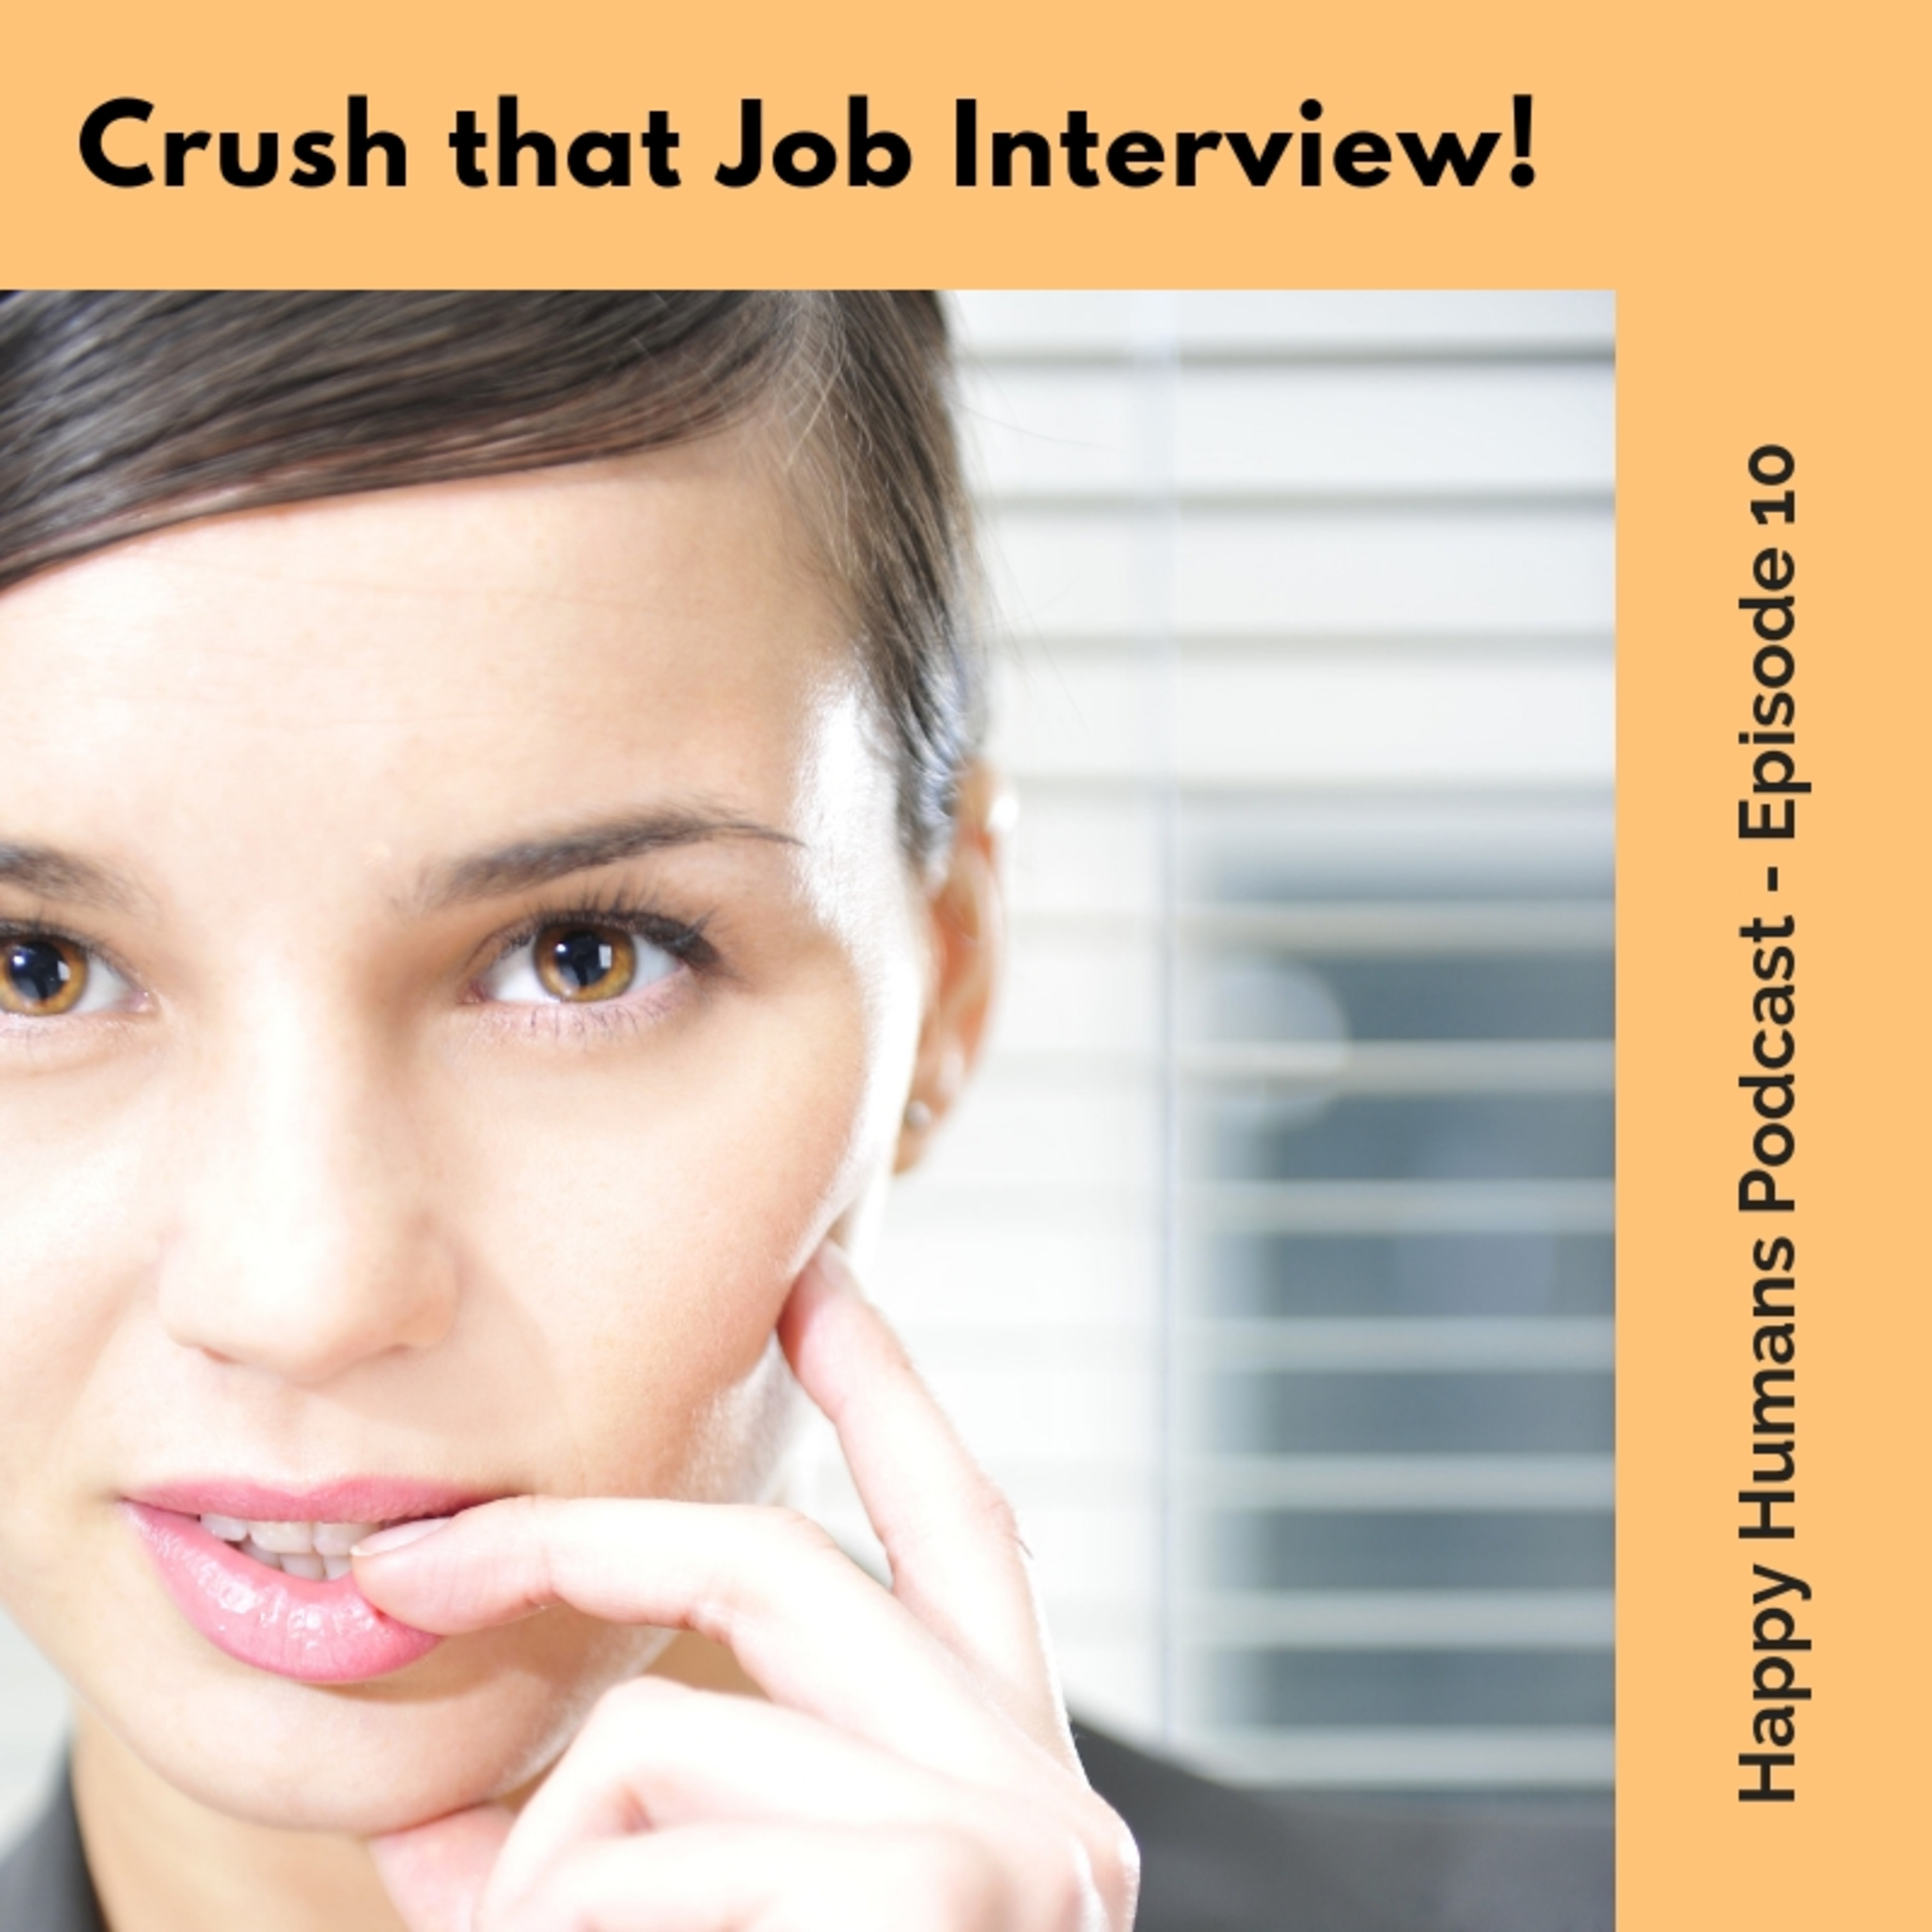 Episode 10 - How to Crush a Job Interview